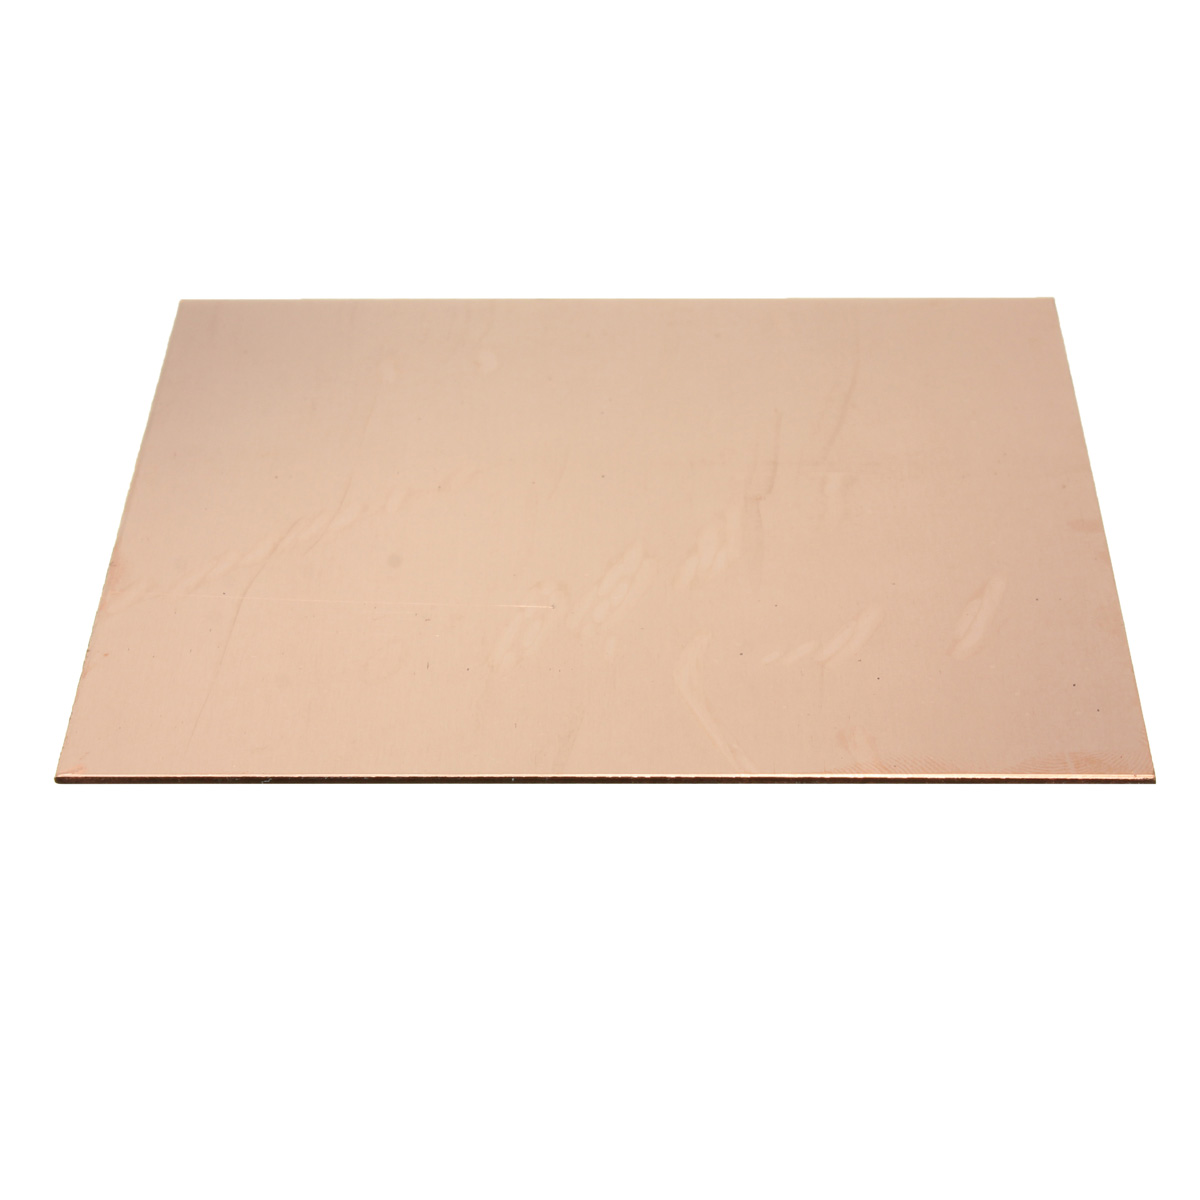 1pc 99.9% Pure Copper Sheet Metal Plate 1mm*100mm*100mm For Welding Brazing